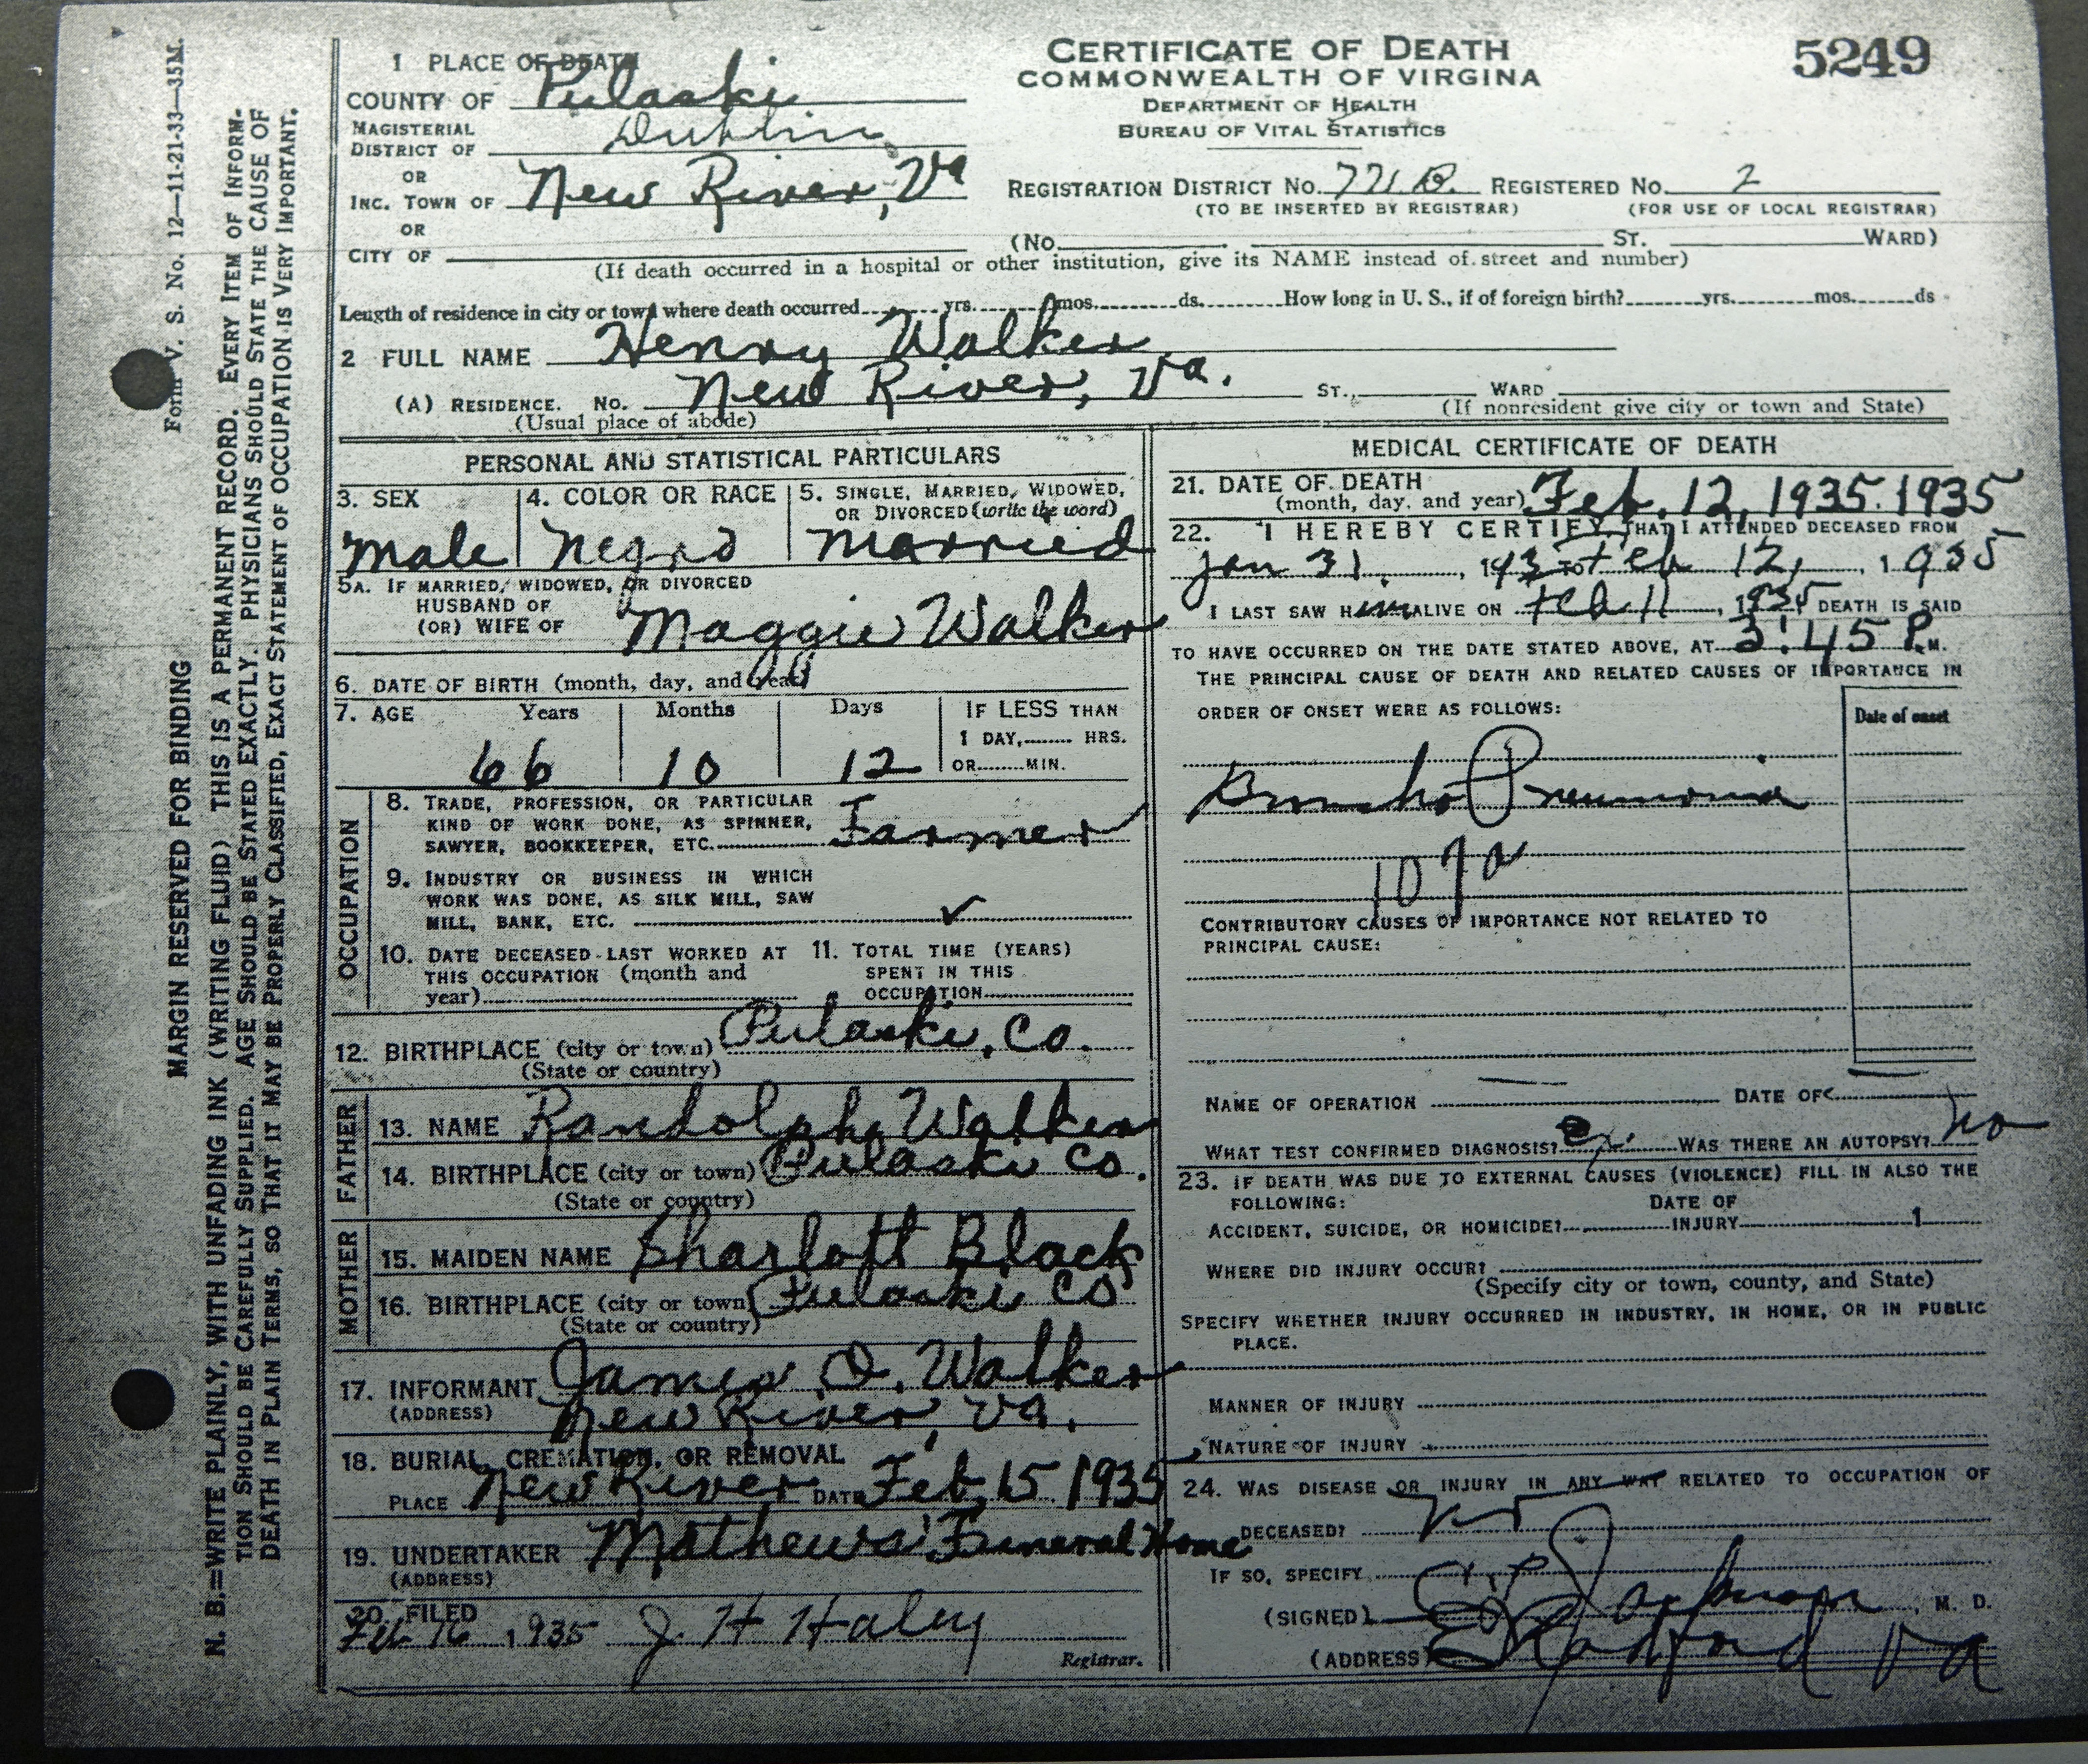 Henry walker 1864 1935 find a grave memorial 1935 virginia death certificate for henry walker from the library of virginia richmond va aiddatafo Images